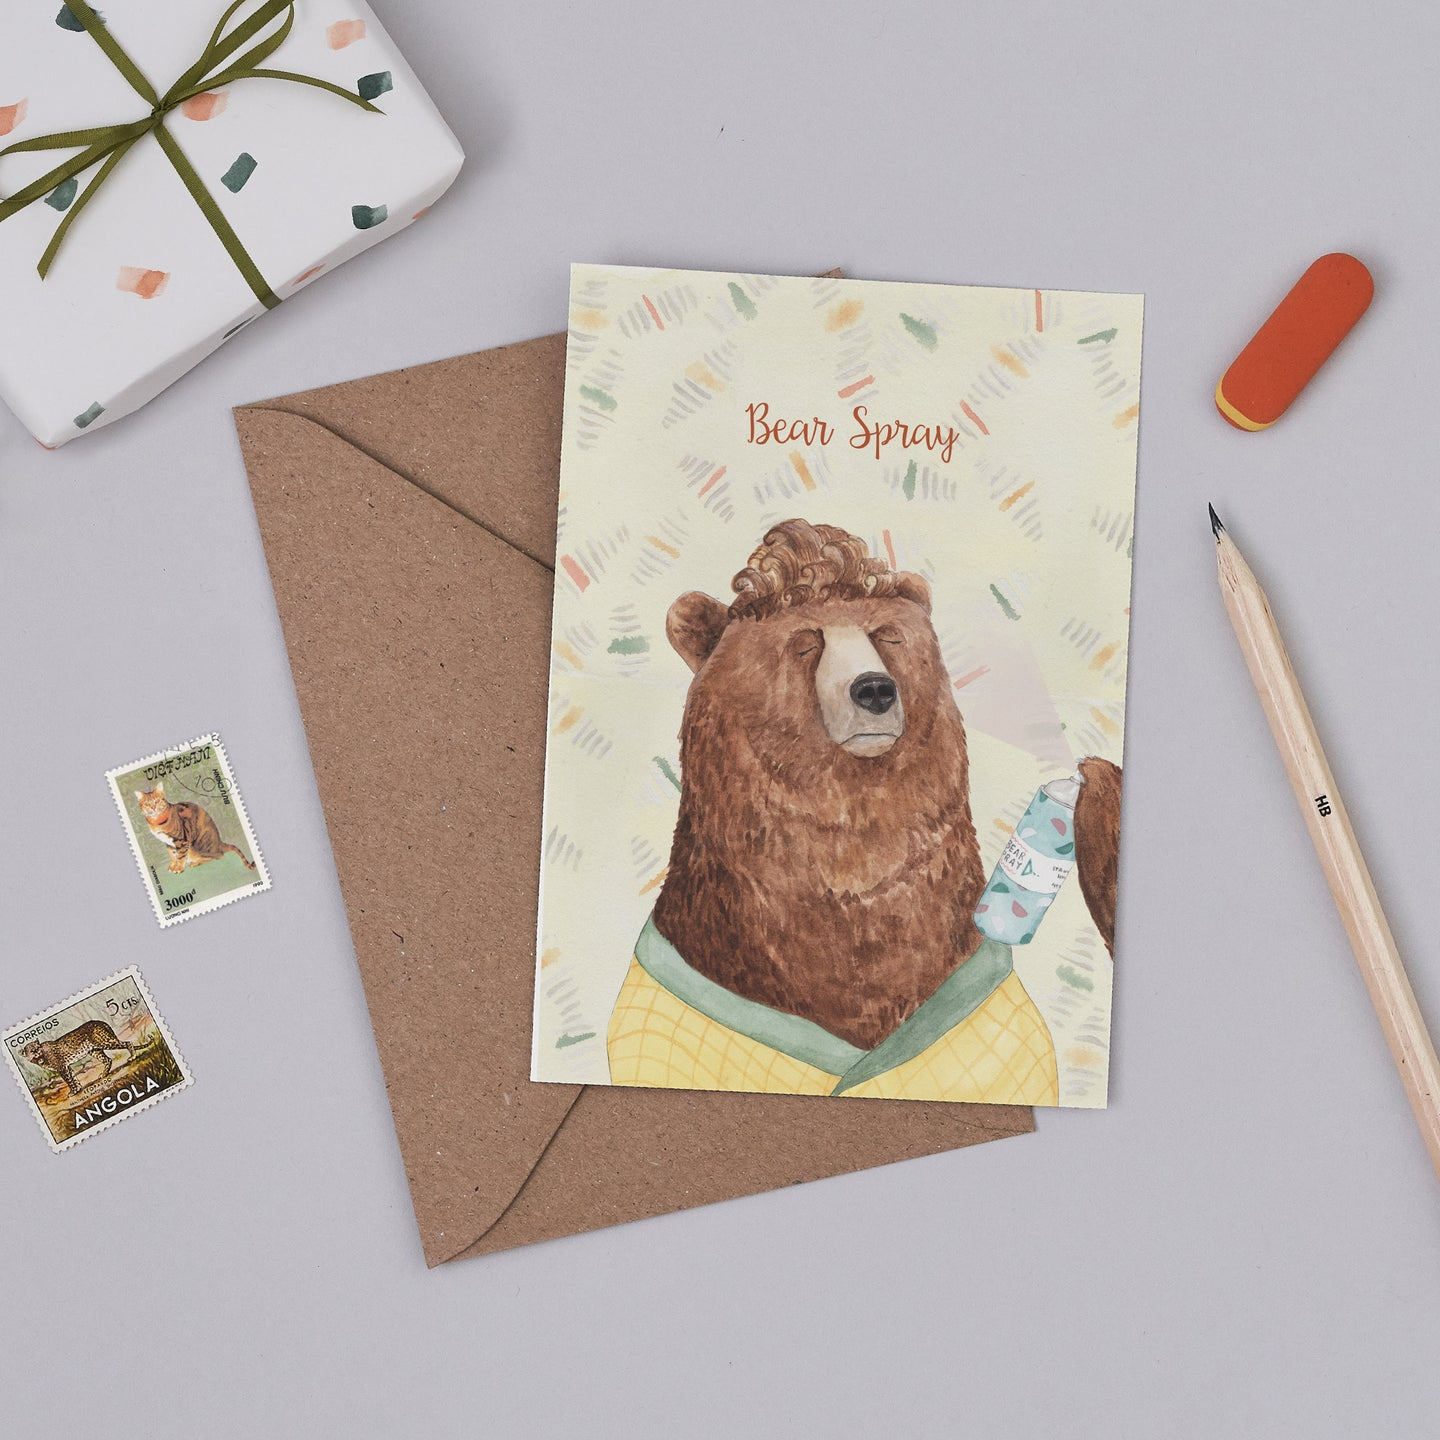 Bear Spray Card